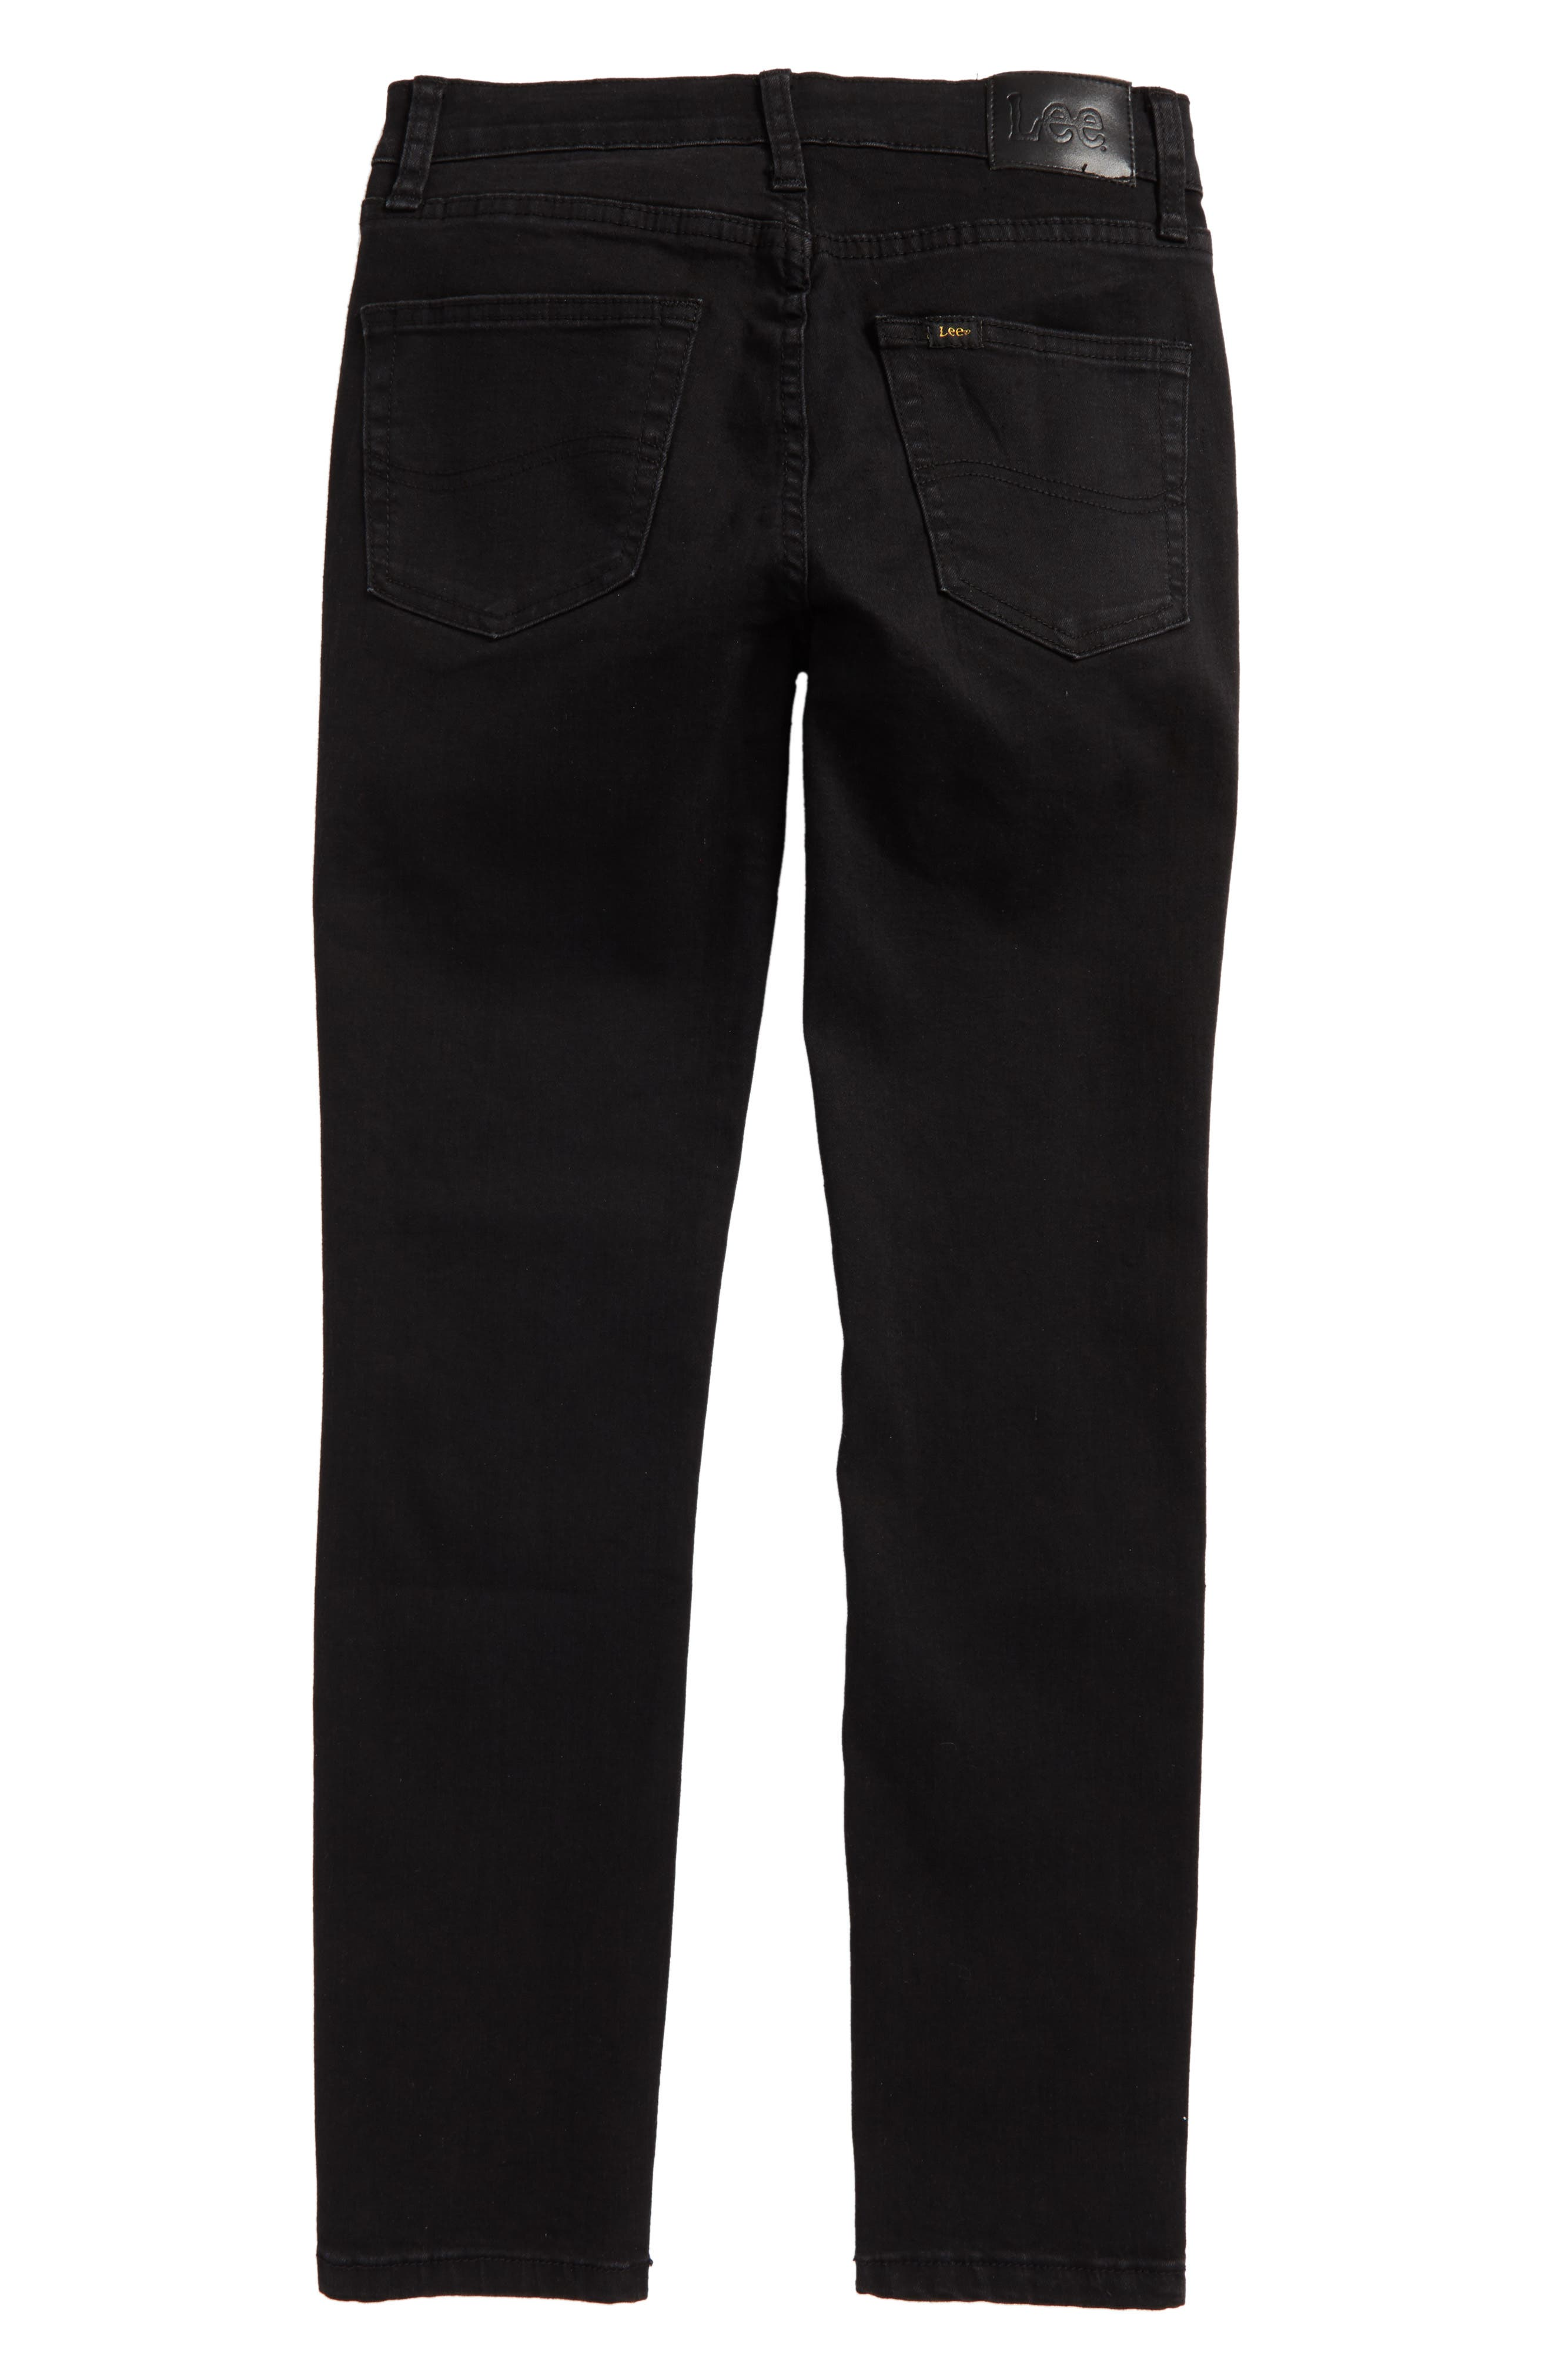 Stretch Skinny Jeans,                             Alternate thumbnail 2, color,                             011